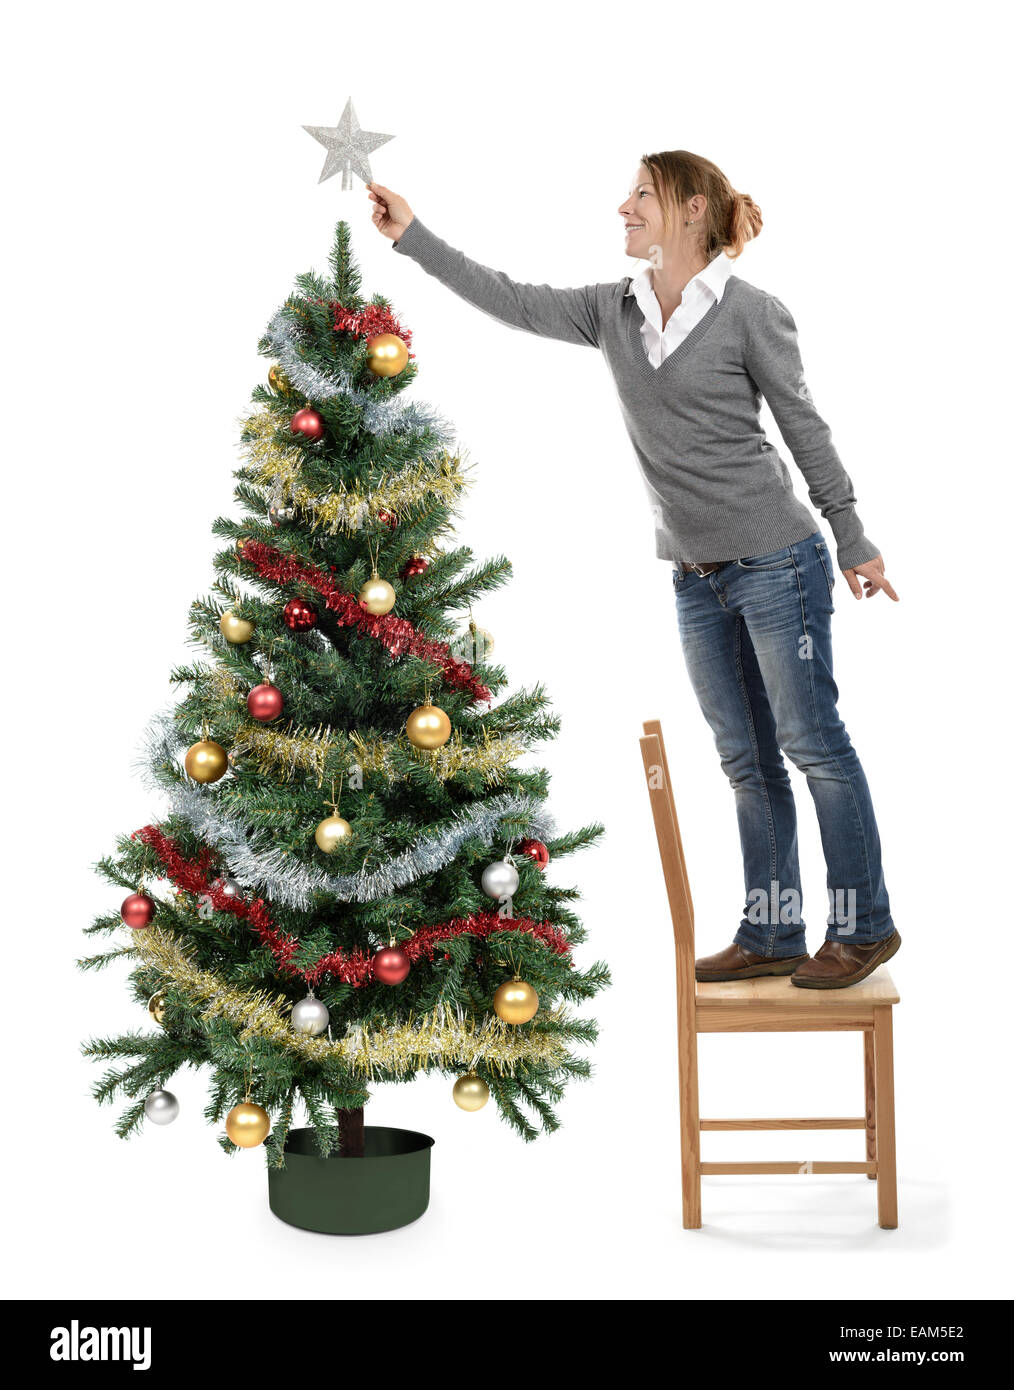 Stock Photo  Woman Christmas Tree Decorating Ornaments Putting A Star On  The Tree Top